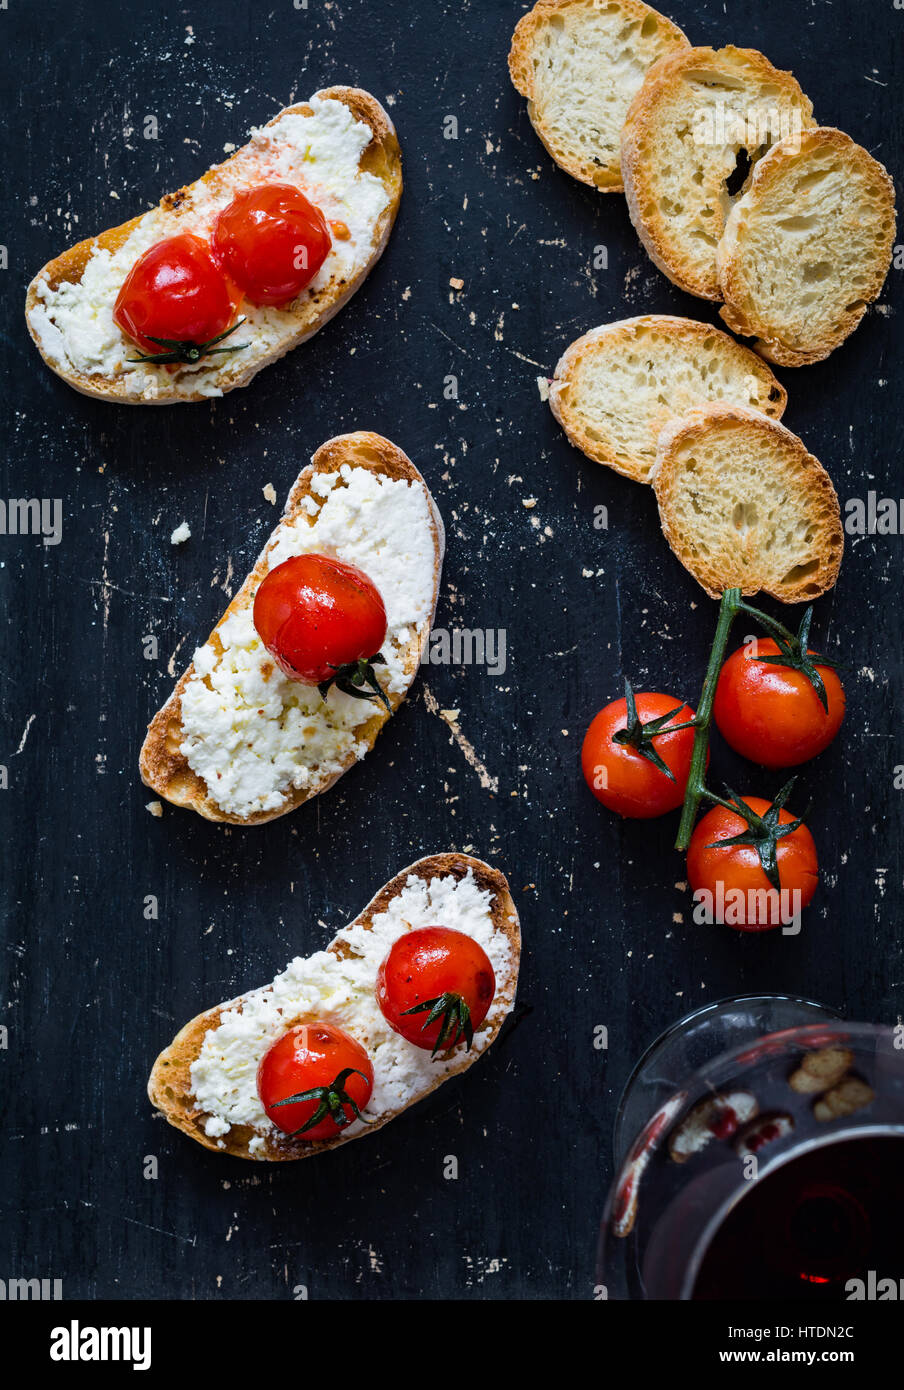 Toast with white cheese spread and roasted cherry tomatoes and glass of red wine over black background. Top view - Stock Image